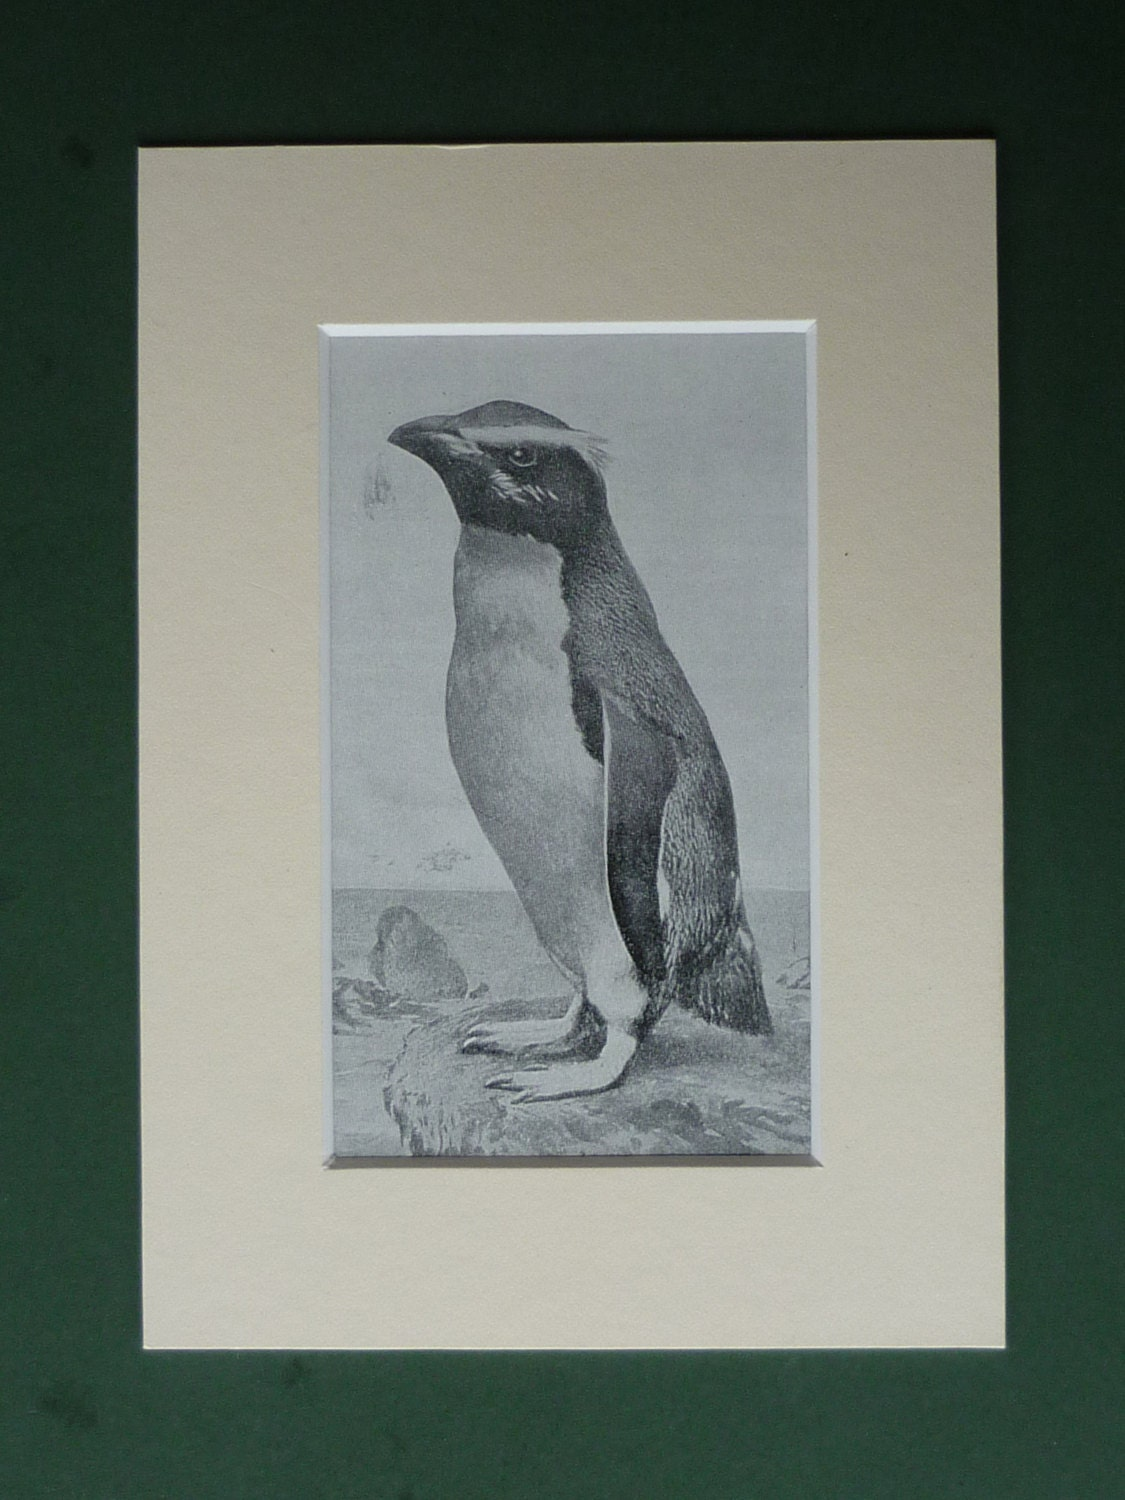 Original 1920s Rockhopper Penguin Matted Print - Rock Hopper - Bird - Ornithology - Nature - Wildlife - Antarctica - PrimrosePrints